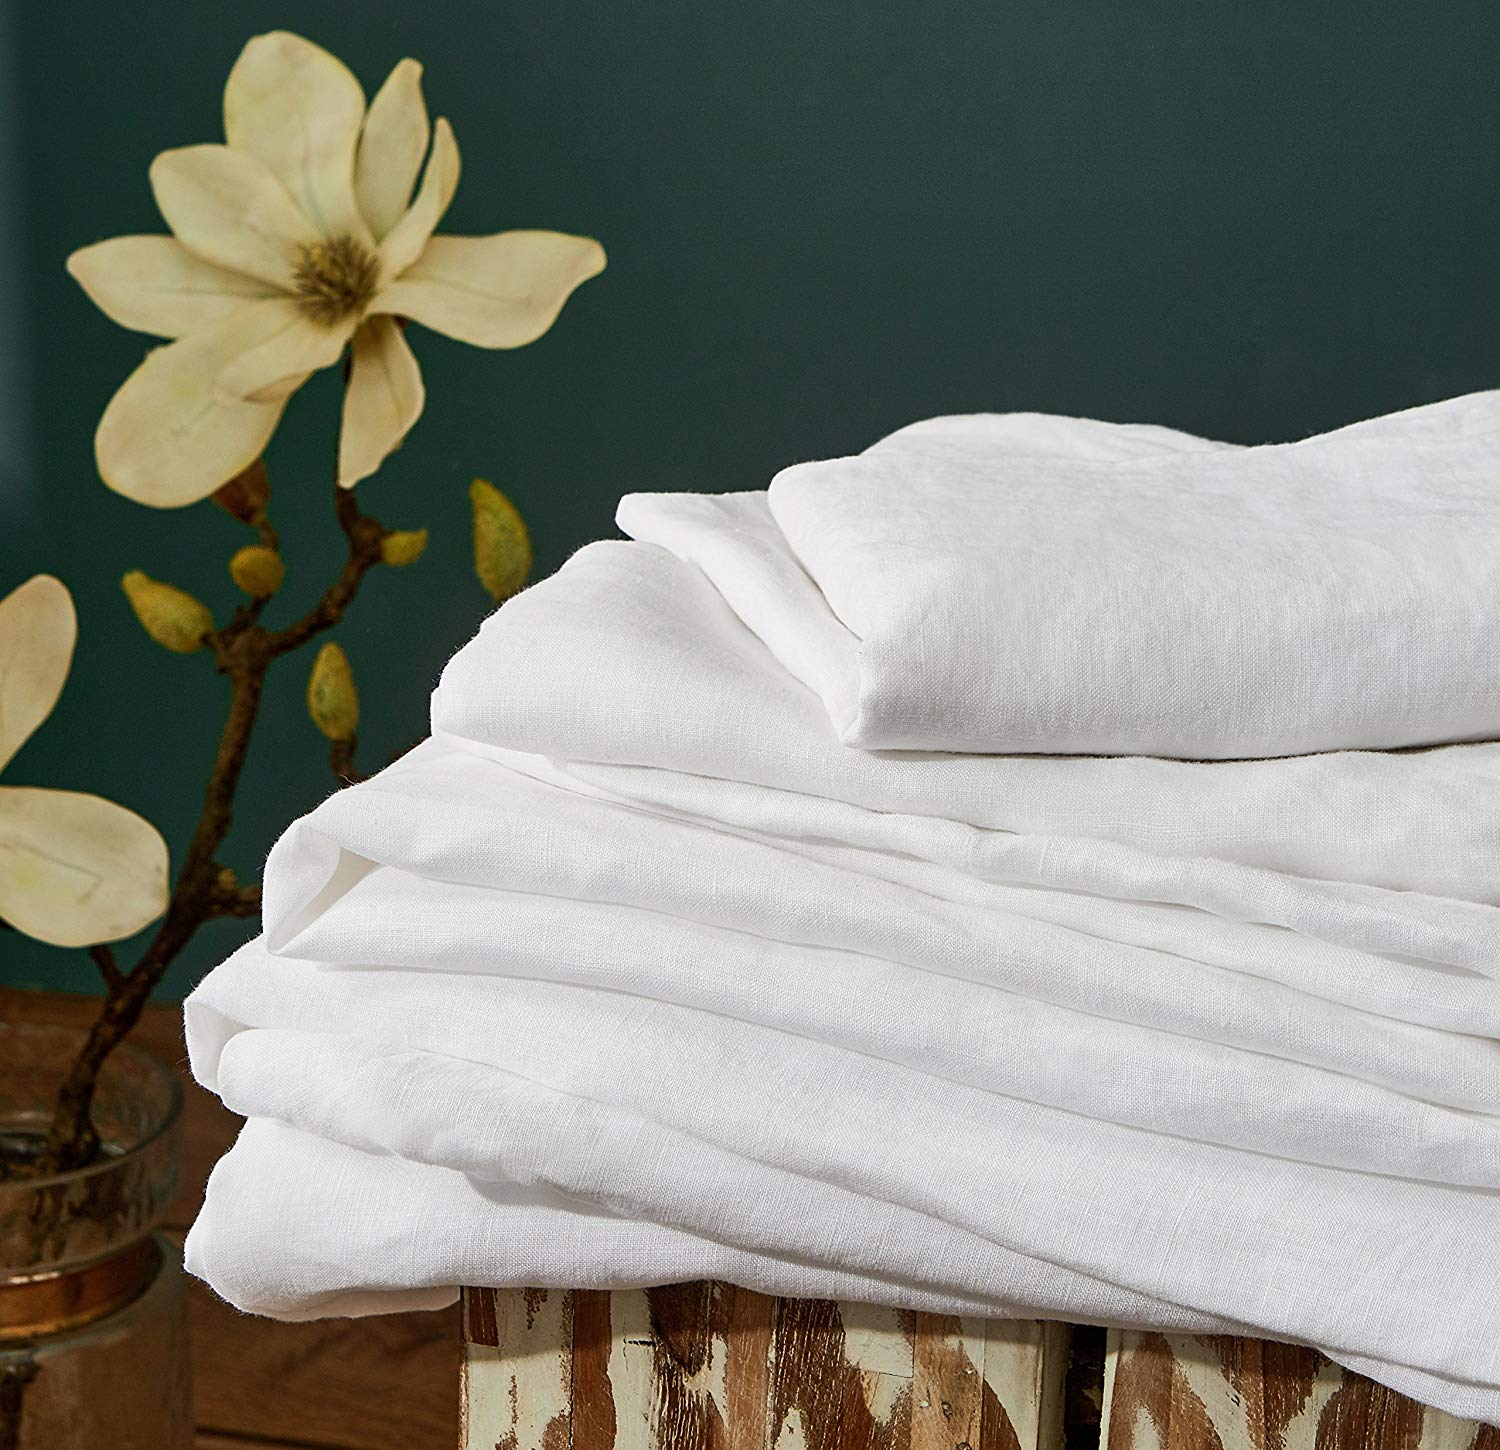 DAPU Pure Linen Sheets Set - Affordable Linen Sheets